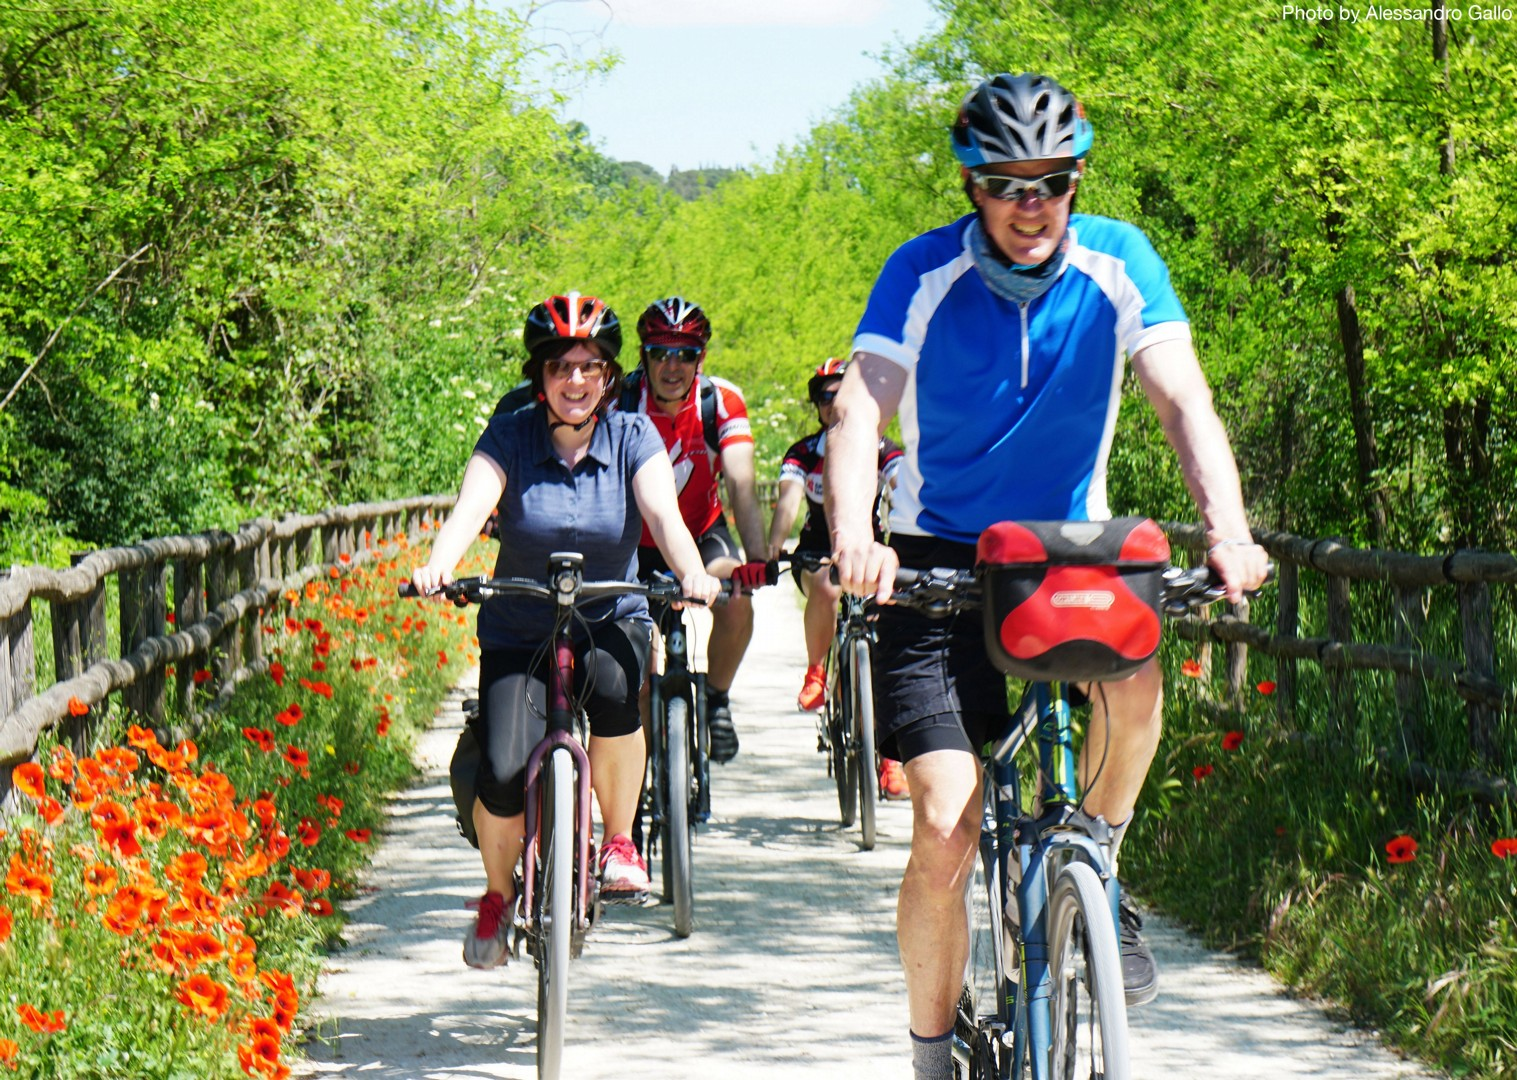 Guided-Leisure-Cycling-Holiday-Italy-Via-Francigena-Tuscany-to-Rome-better-by-bike - Italy - Via Francigena (Tuscany to Rome) - Guided Leisure Cycling Holiday - Italia Leisure and Family Cycling